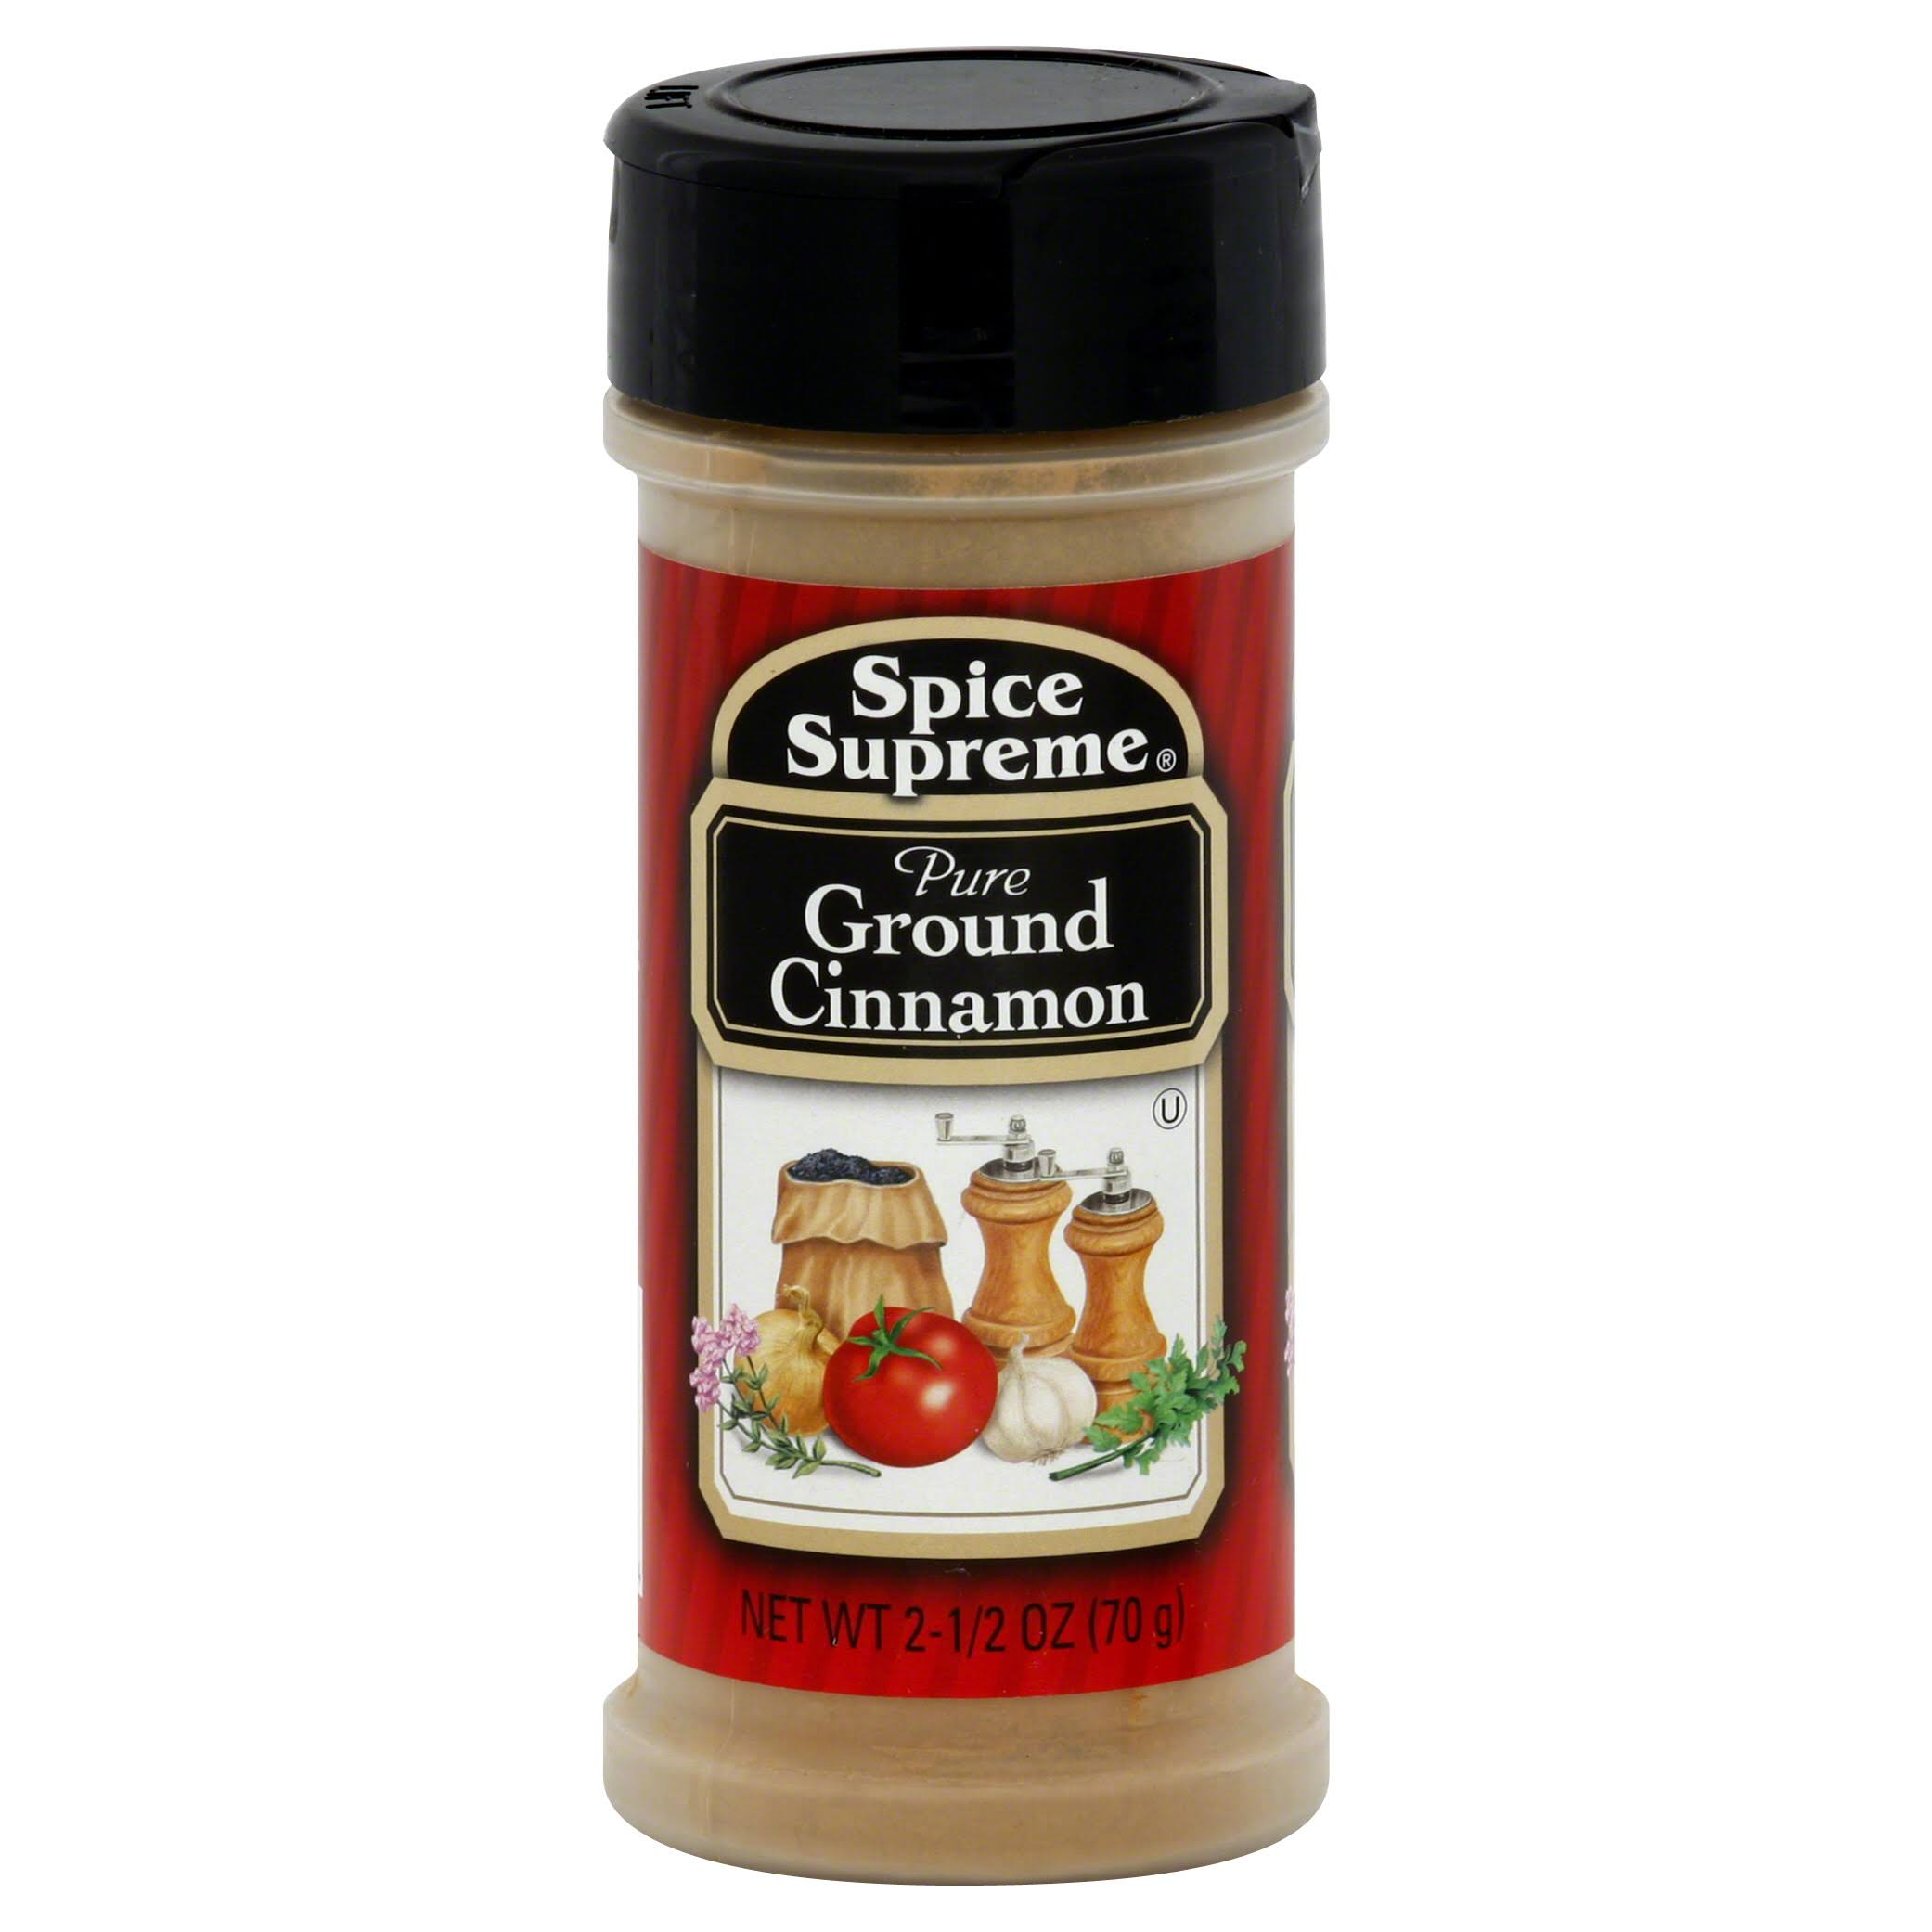 Spice Supreme Cinnamon - Pure, Ground, 70g